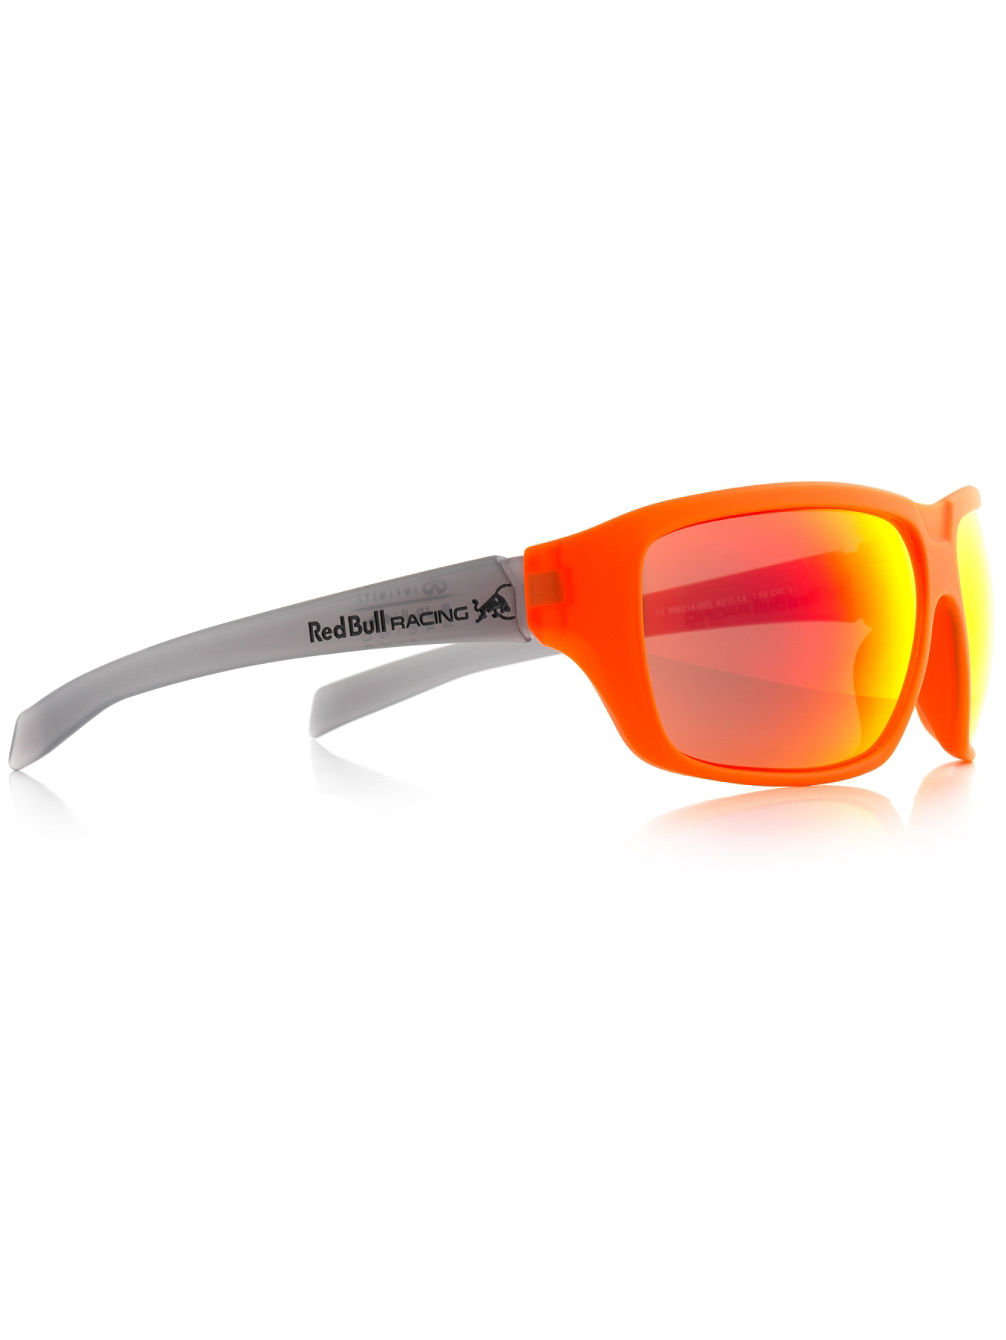 red bull racing eyewear rbr214 orange sonnenbrille online. Black Bedroom Furniture Sets. Home Design Ideas